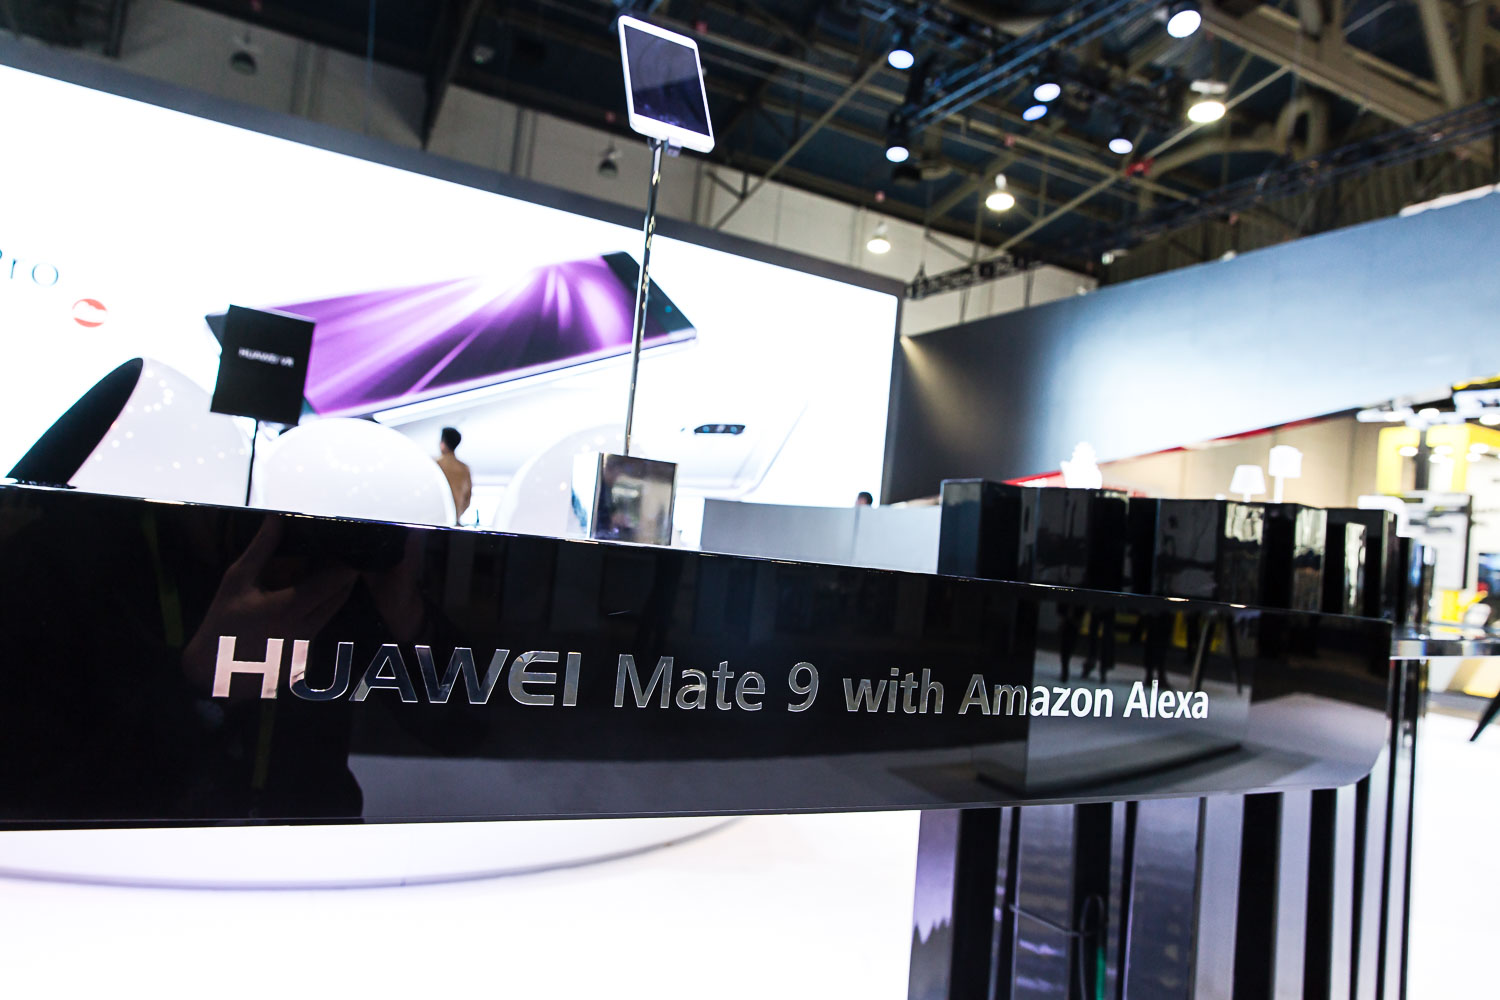 170105_abtknk_huawei_ces_booth_lr_s_18h48m48__AB16327